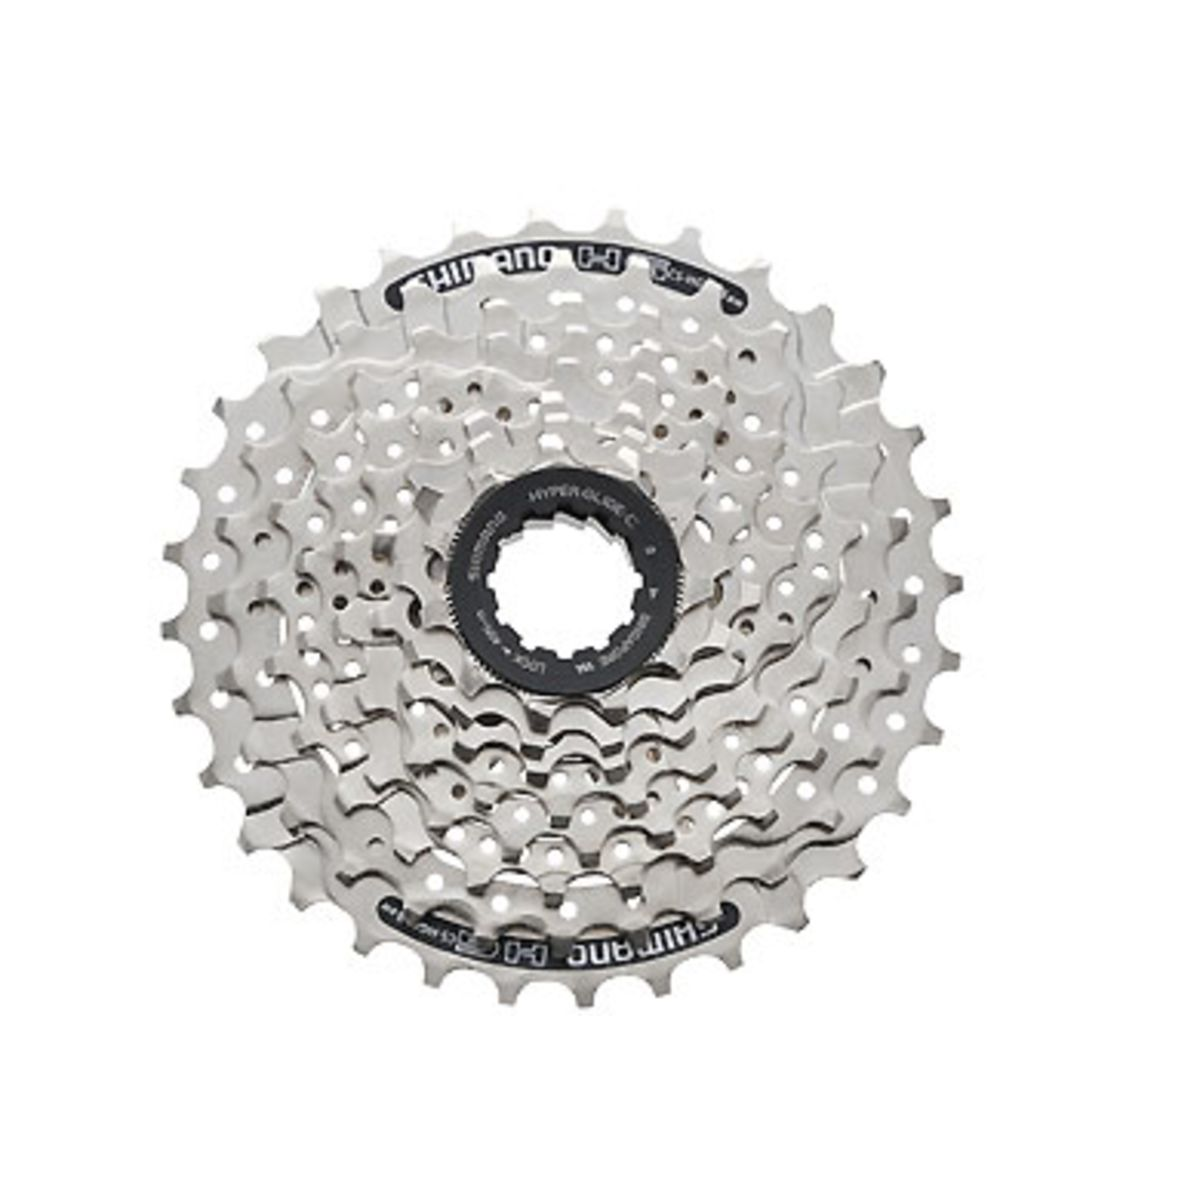 CS-HG 41 8-speed cassette